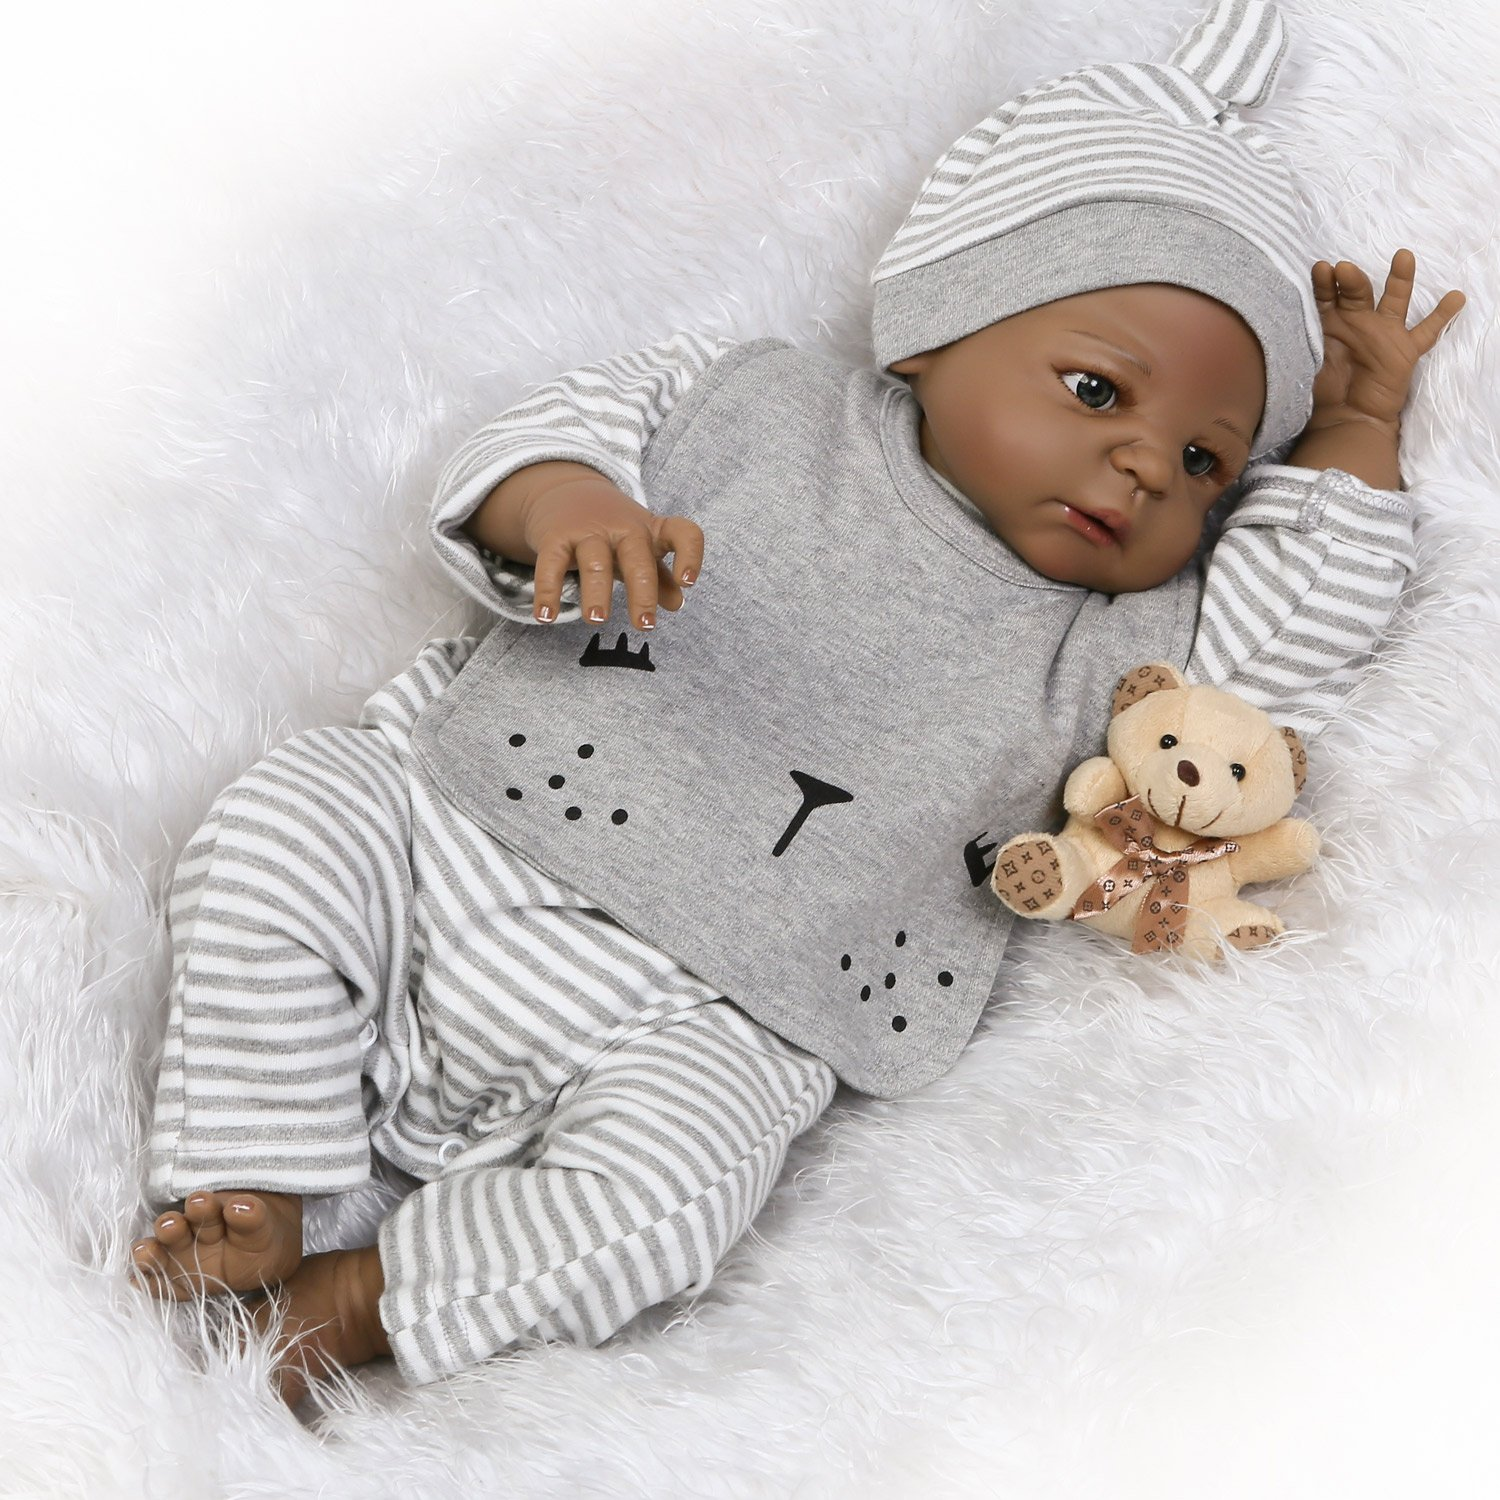 Pursue baby cute washable hard vinyl full body real life black baby doll african american henry 22 inch realistic newborn baby boy doll with pacifier